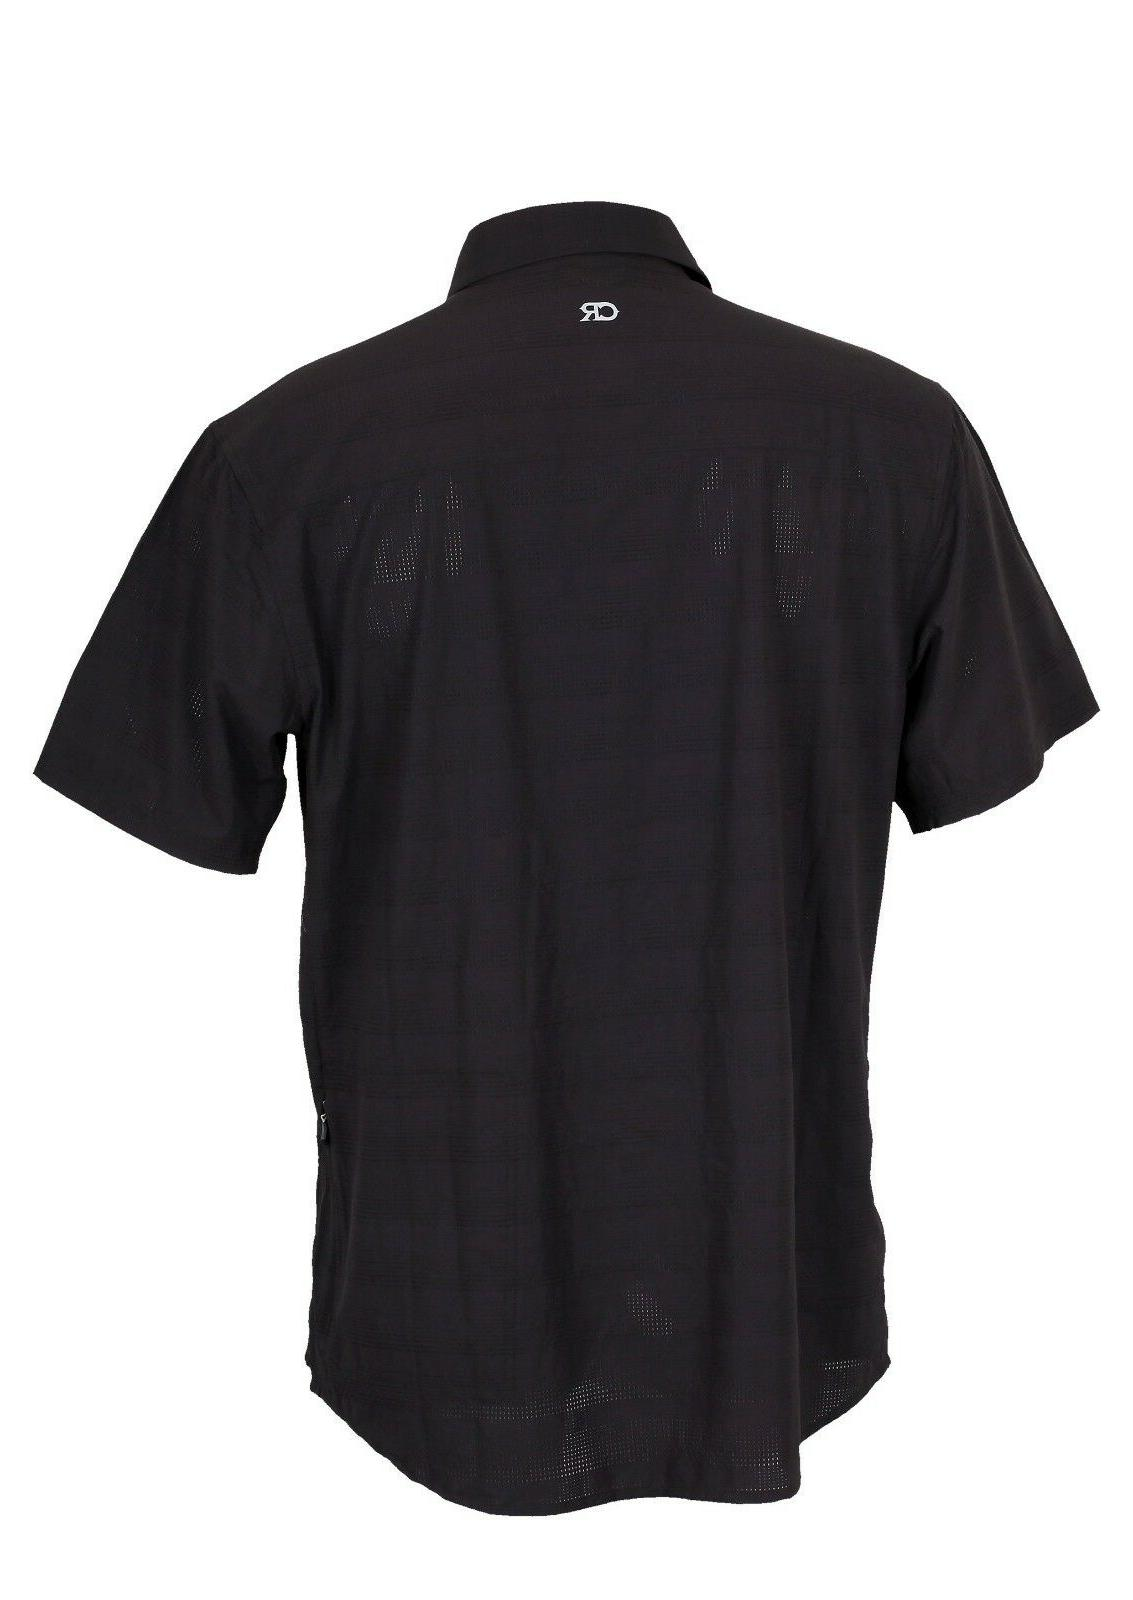 Club Ride Jersey; Men's, M, With